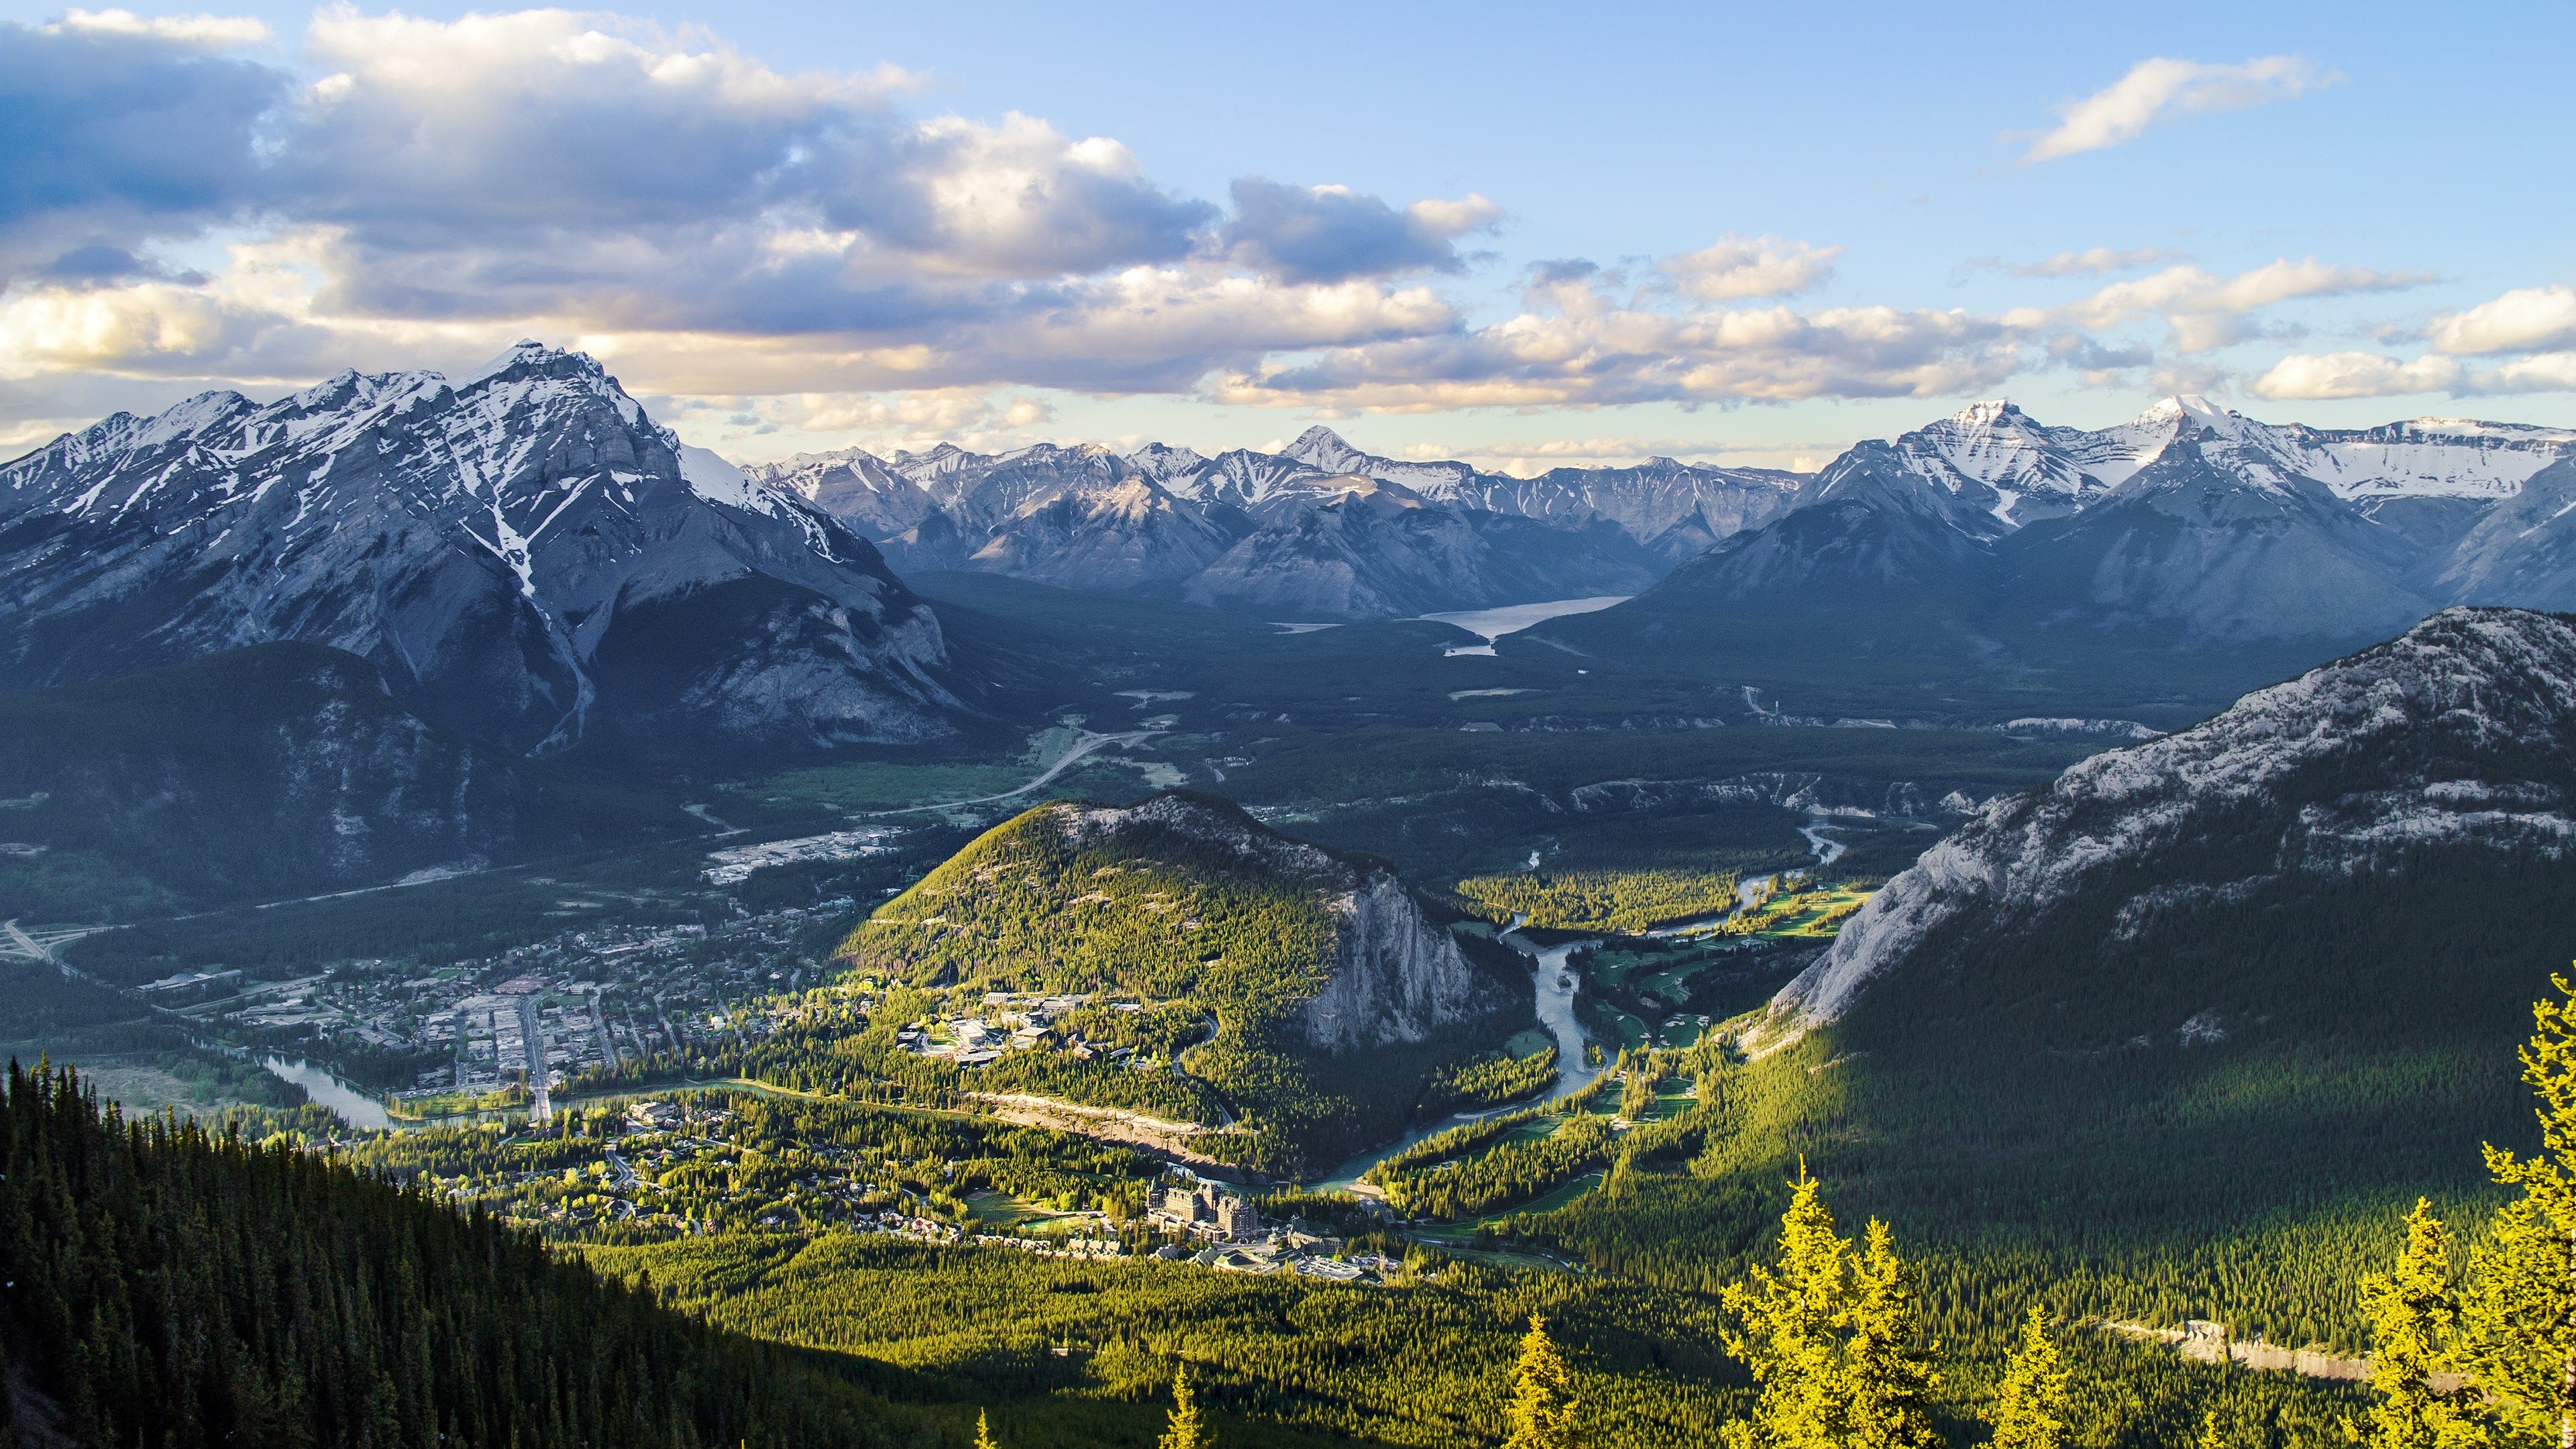 Sulphur Mountain Canada 4K Ultra HD Desktop Wallpaper1